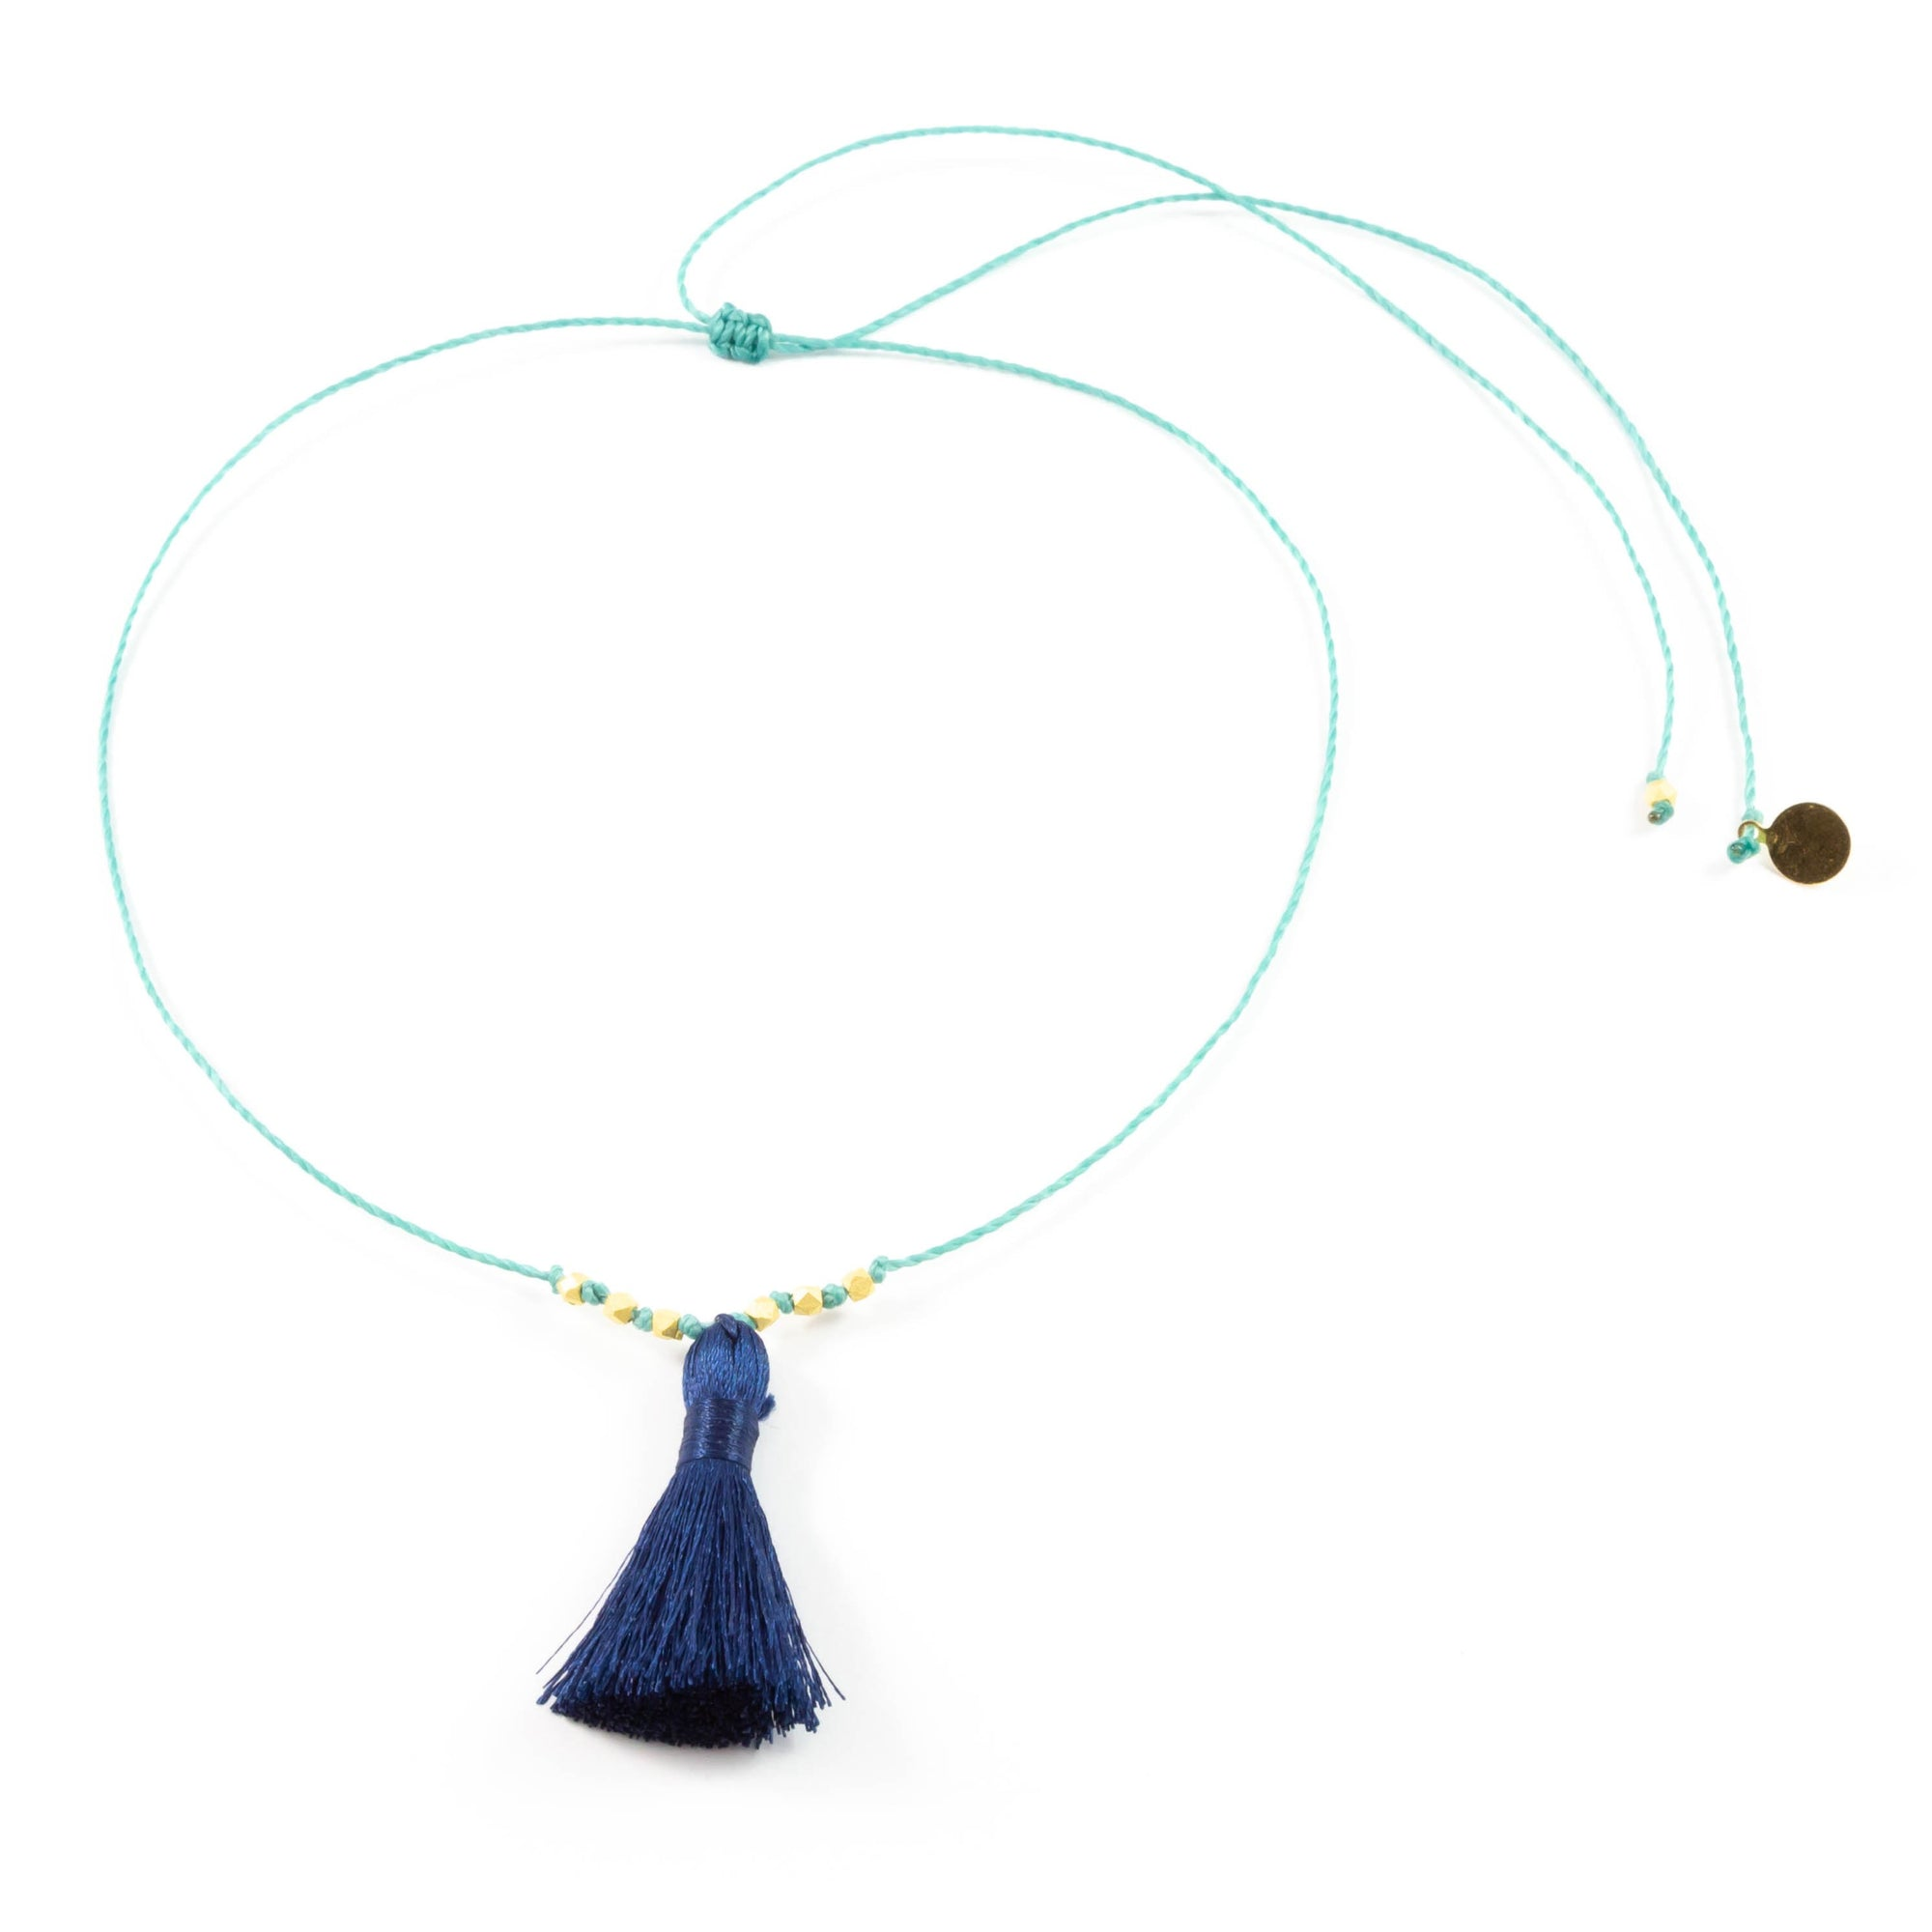 Secret Garden w/ Navy Tassel On a String Necklace in Gold